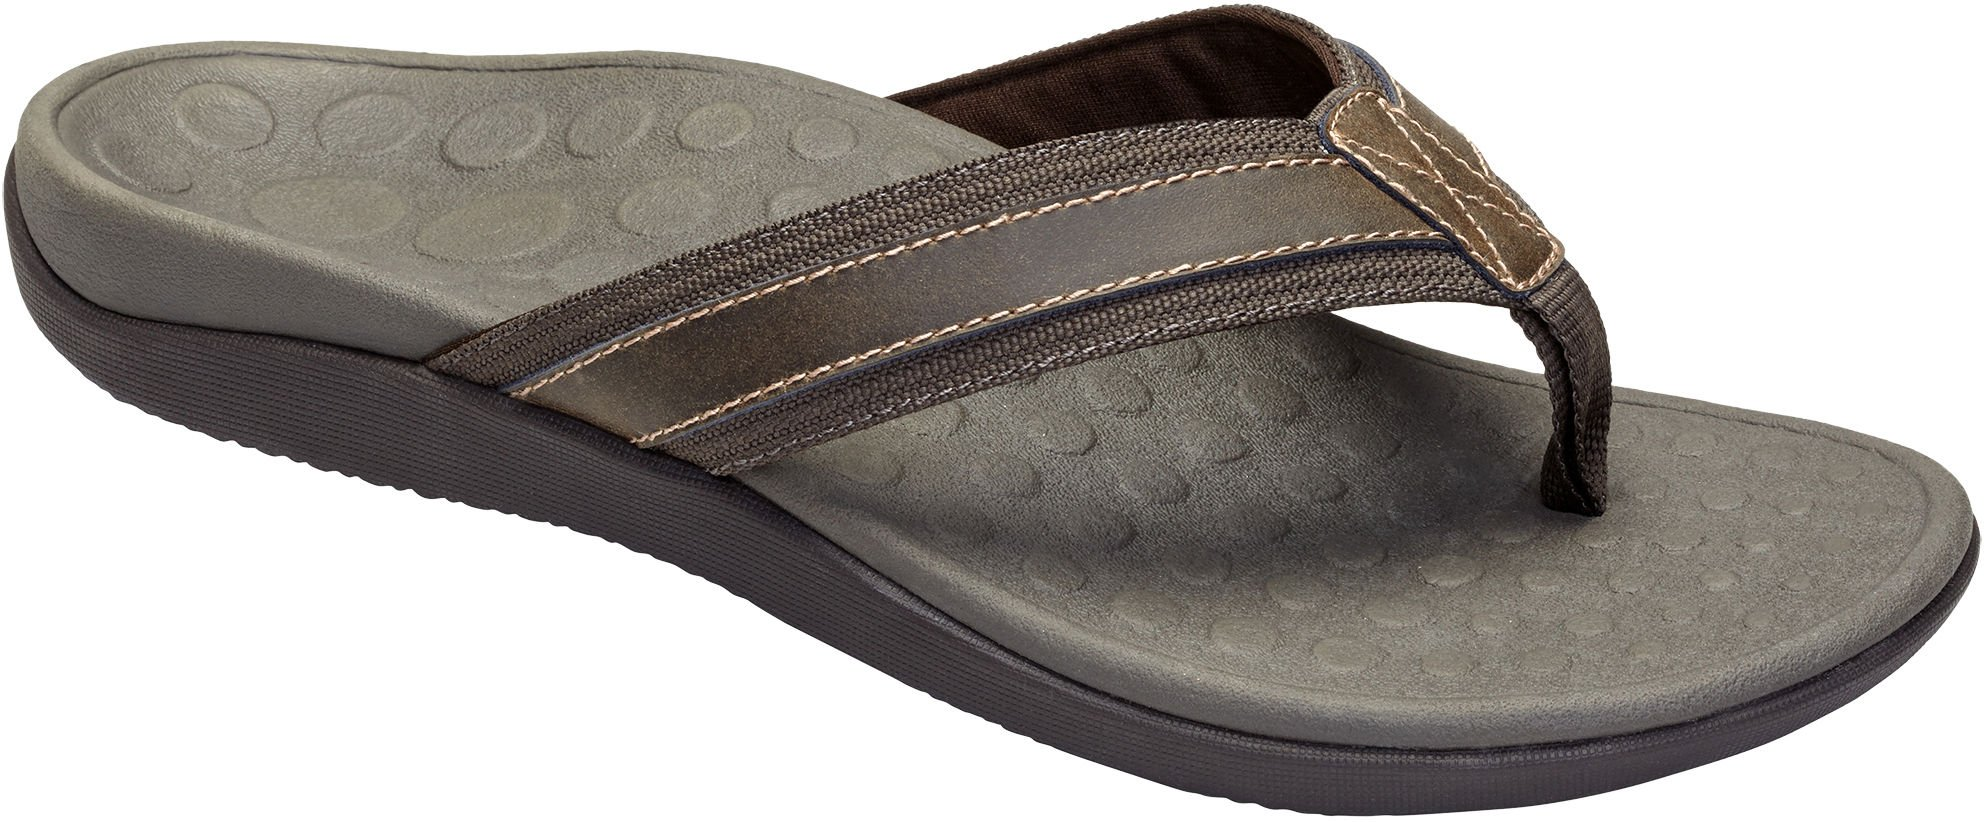 Vionic with Orthaheel Technology Men's Tide Toe Post Sandal,Brown,US 11 M